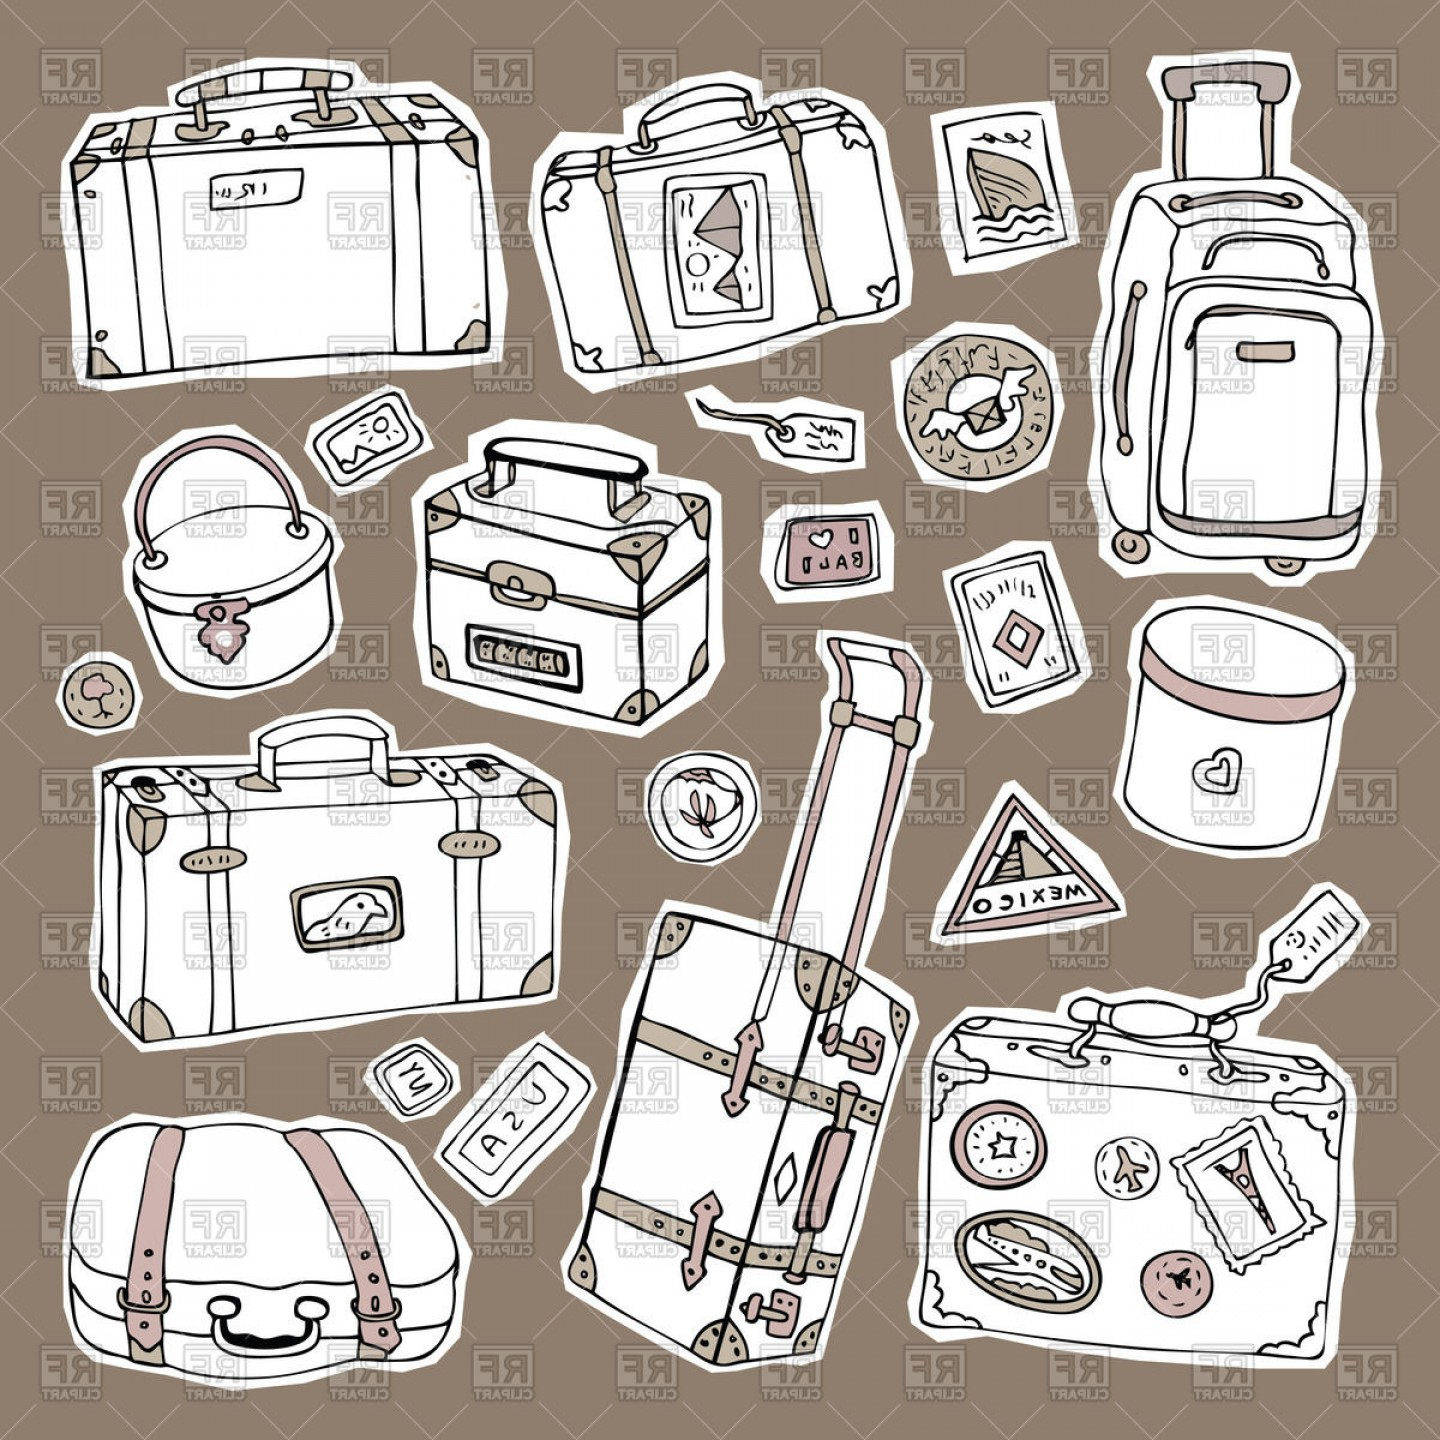 Vintage Luggage Vector: Luggage Collection Of Vintage Suitcases Boxes And Bags Vector Clipart